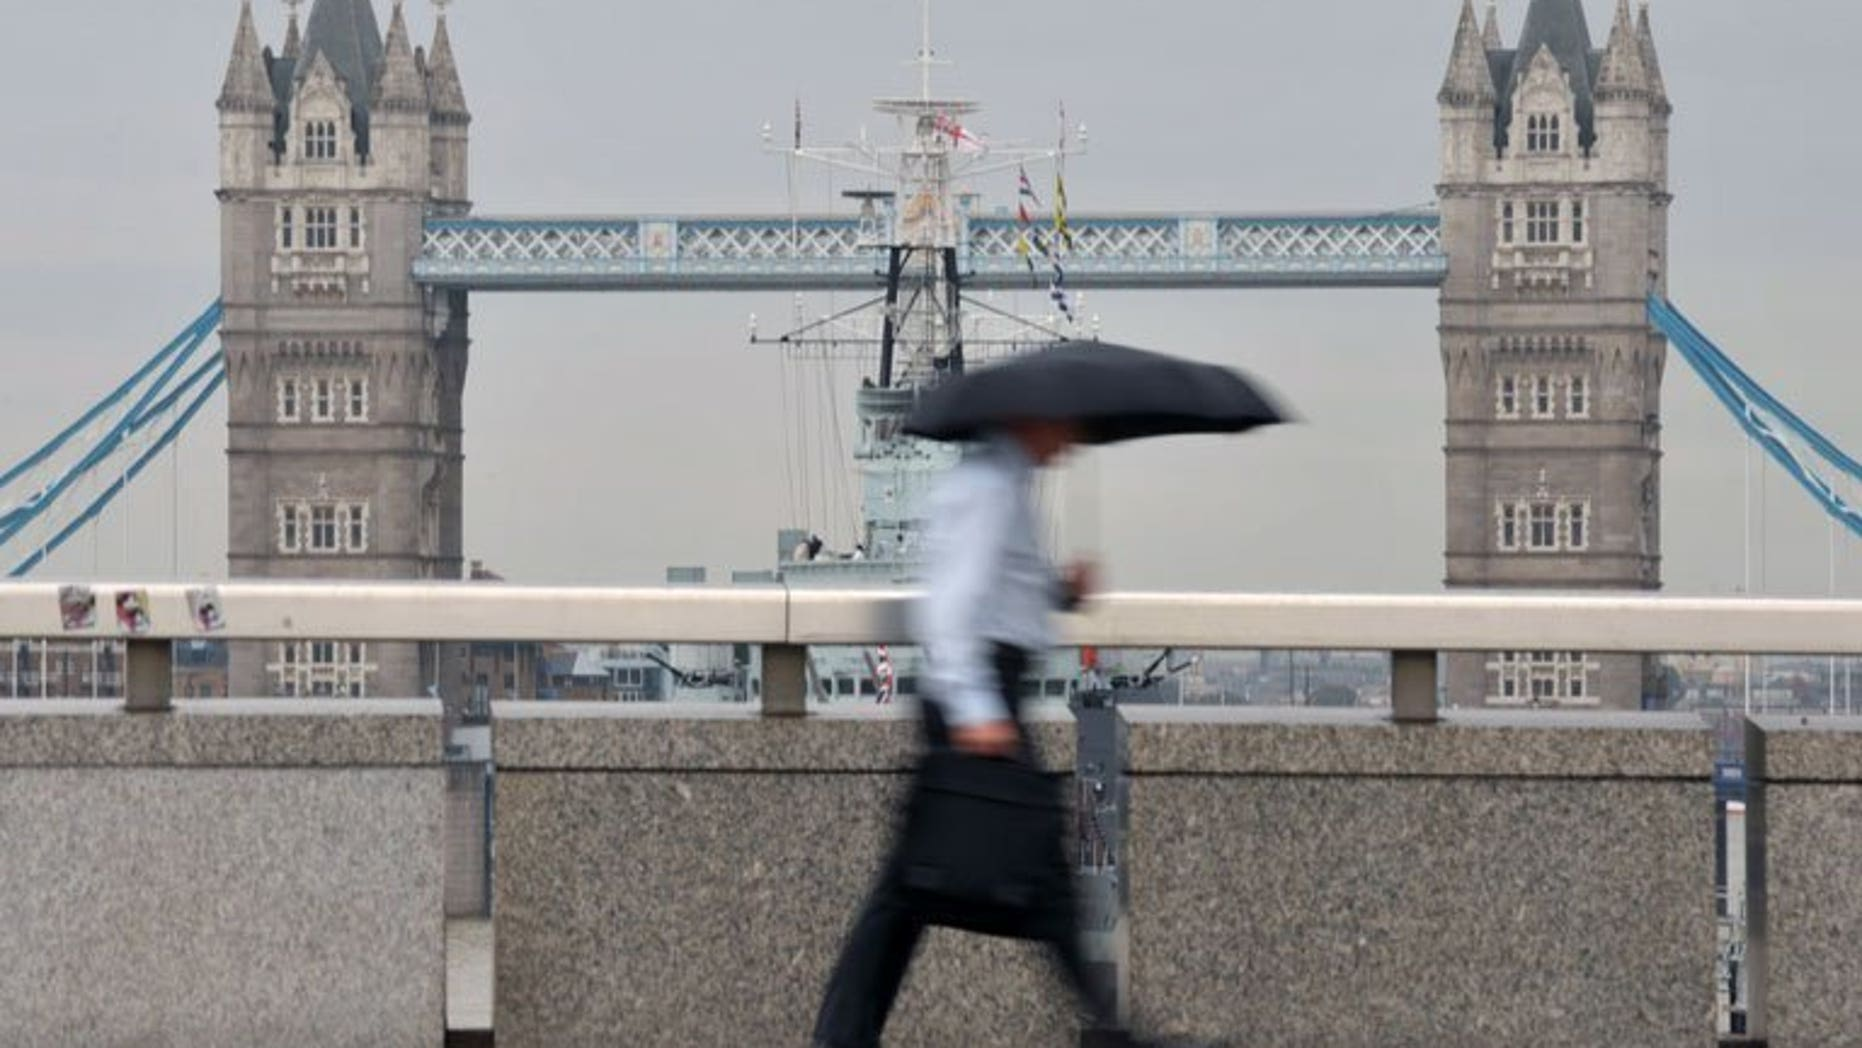 A city worker walks over London Bridge in central London. London shares closed lower on Tuesday as shares in Fresnillo plunged after its results and other miners sank in its wake, dealers said.